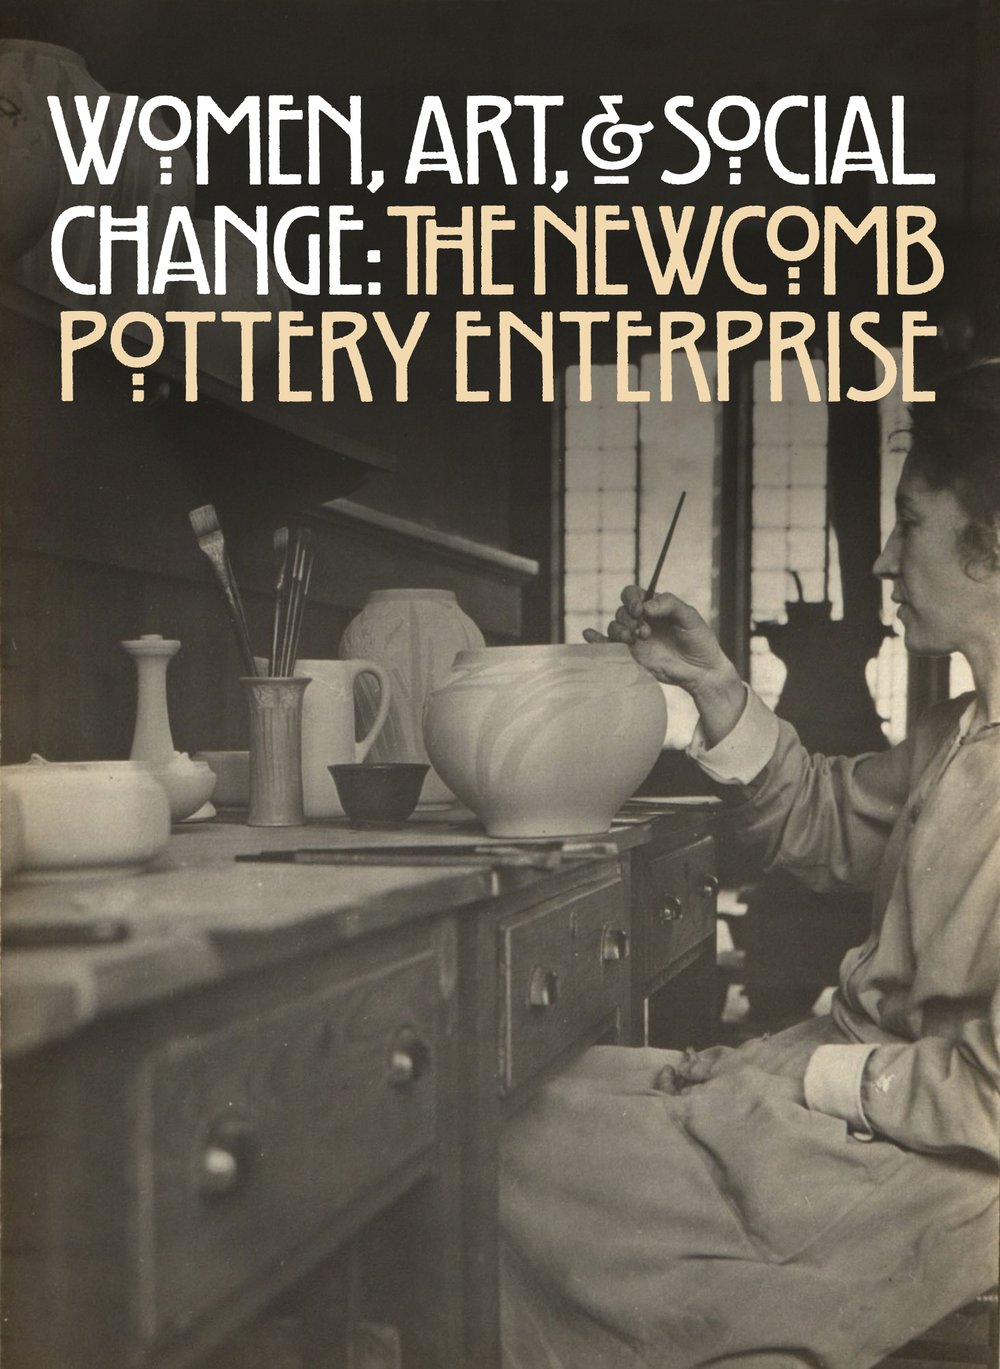 newcomb women Newcomb pottery was manufactured by students at sophie newcomb memorial college in louisiana and provided a suitable way for young women to enter the workforce it is highly sought after for its soft glazes and often muted patterns.